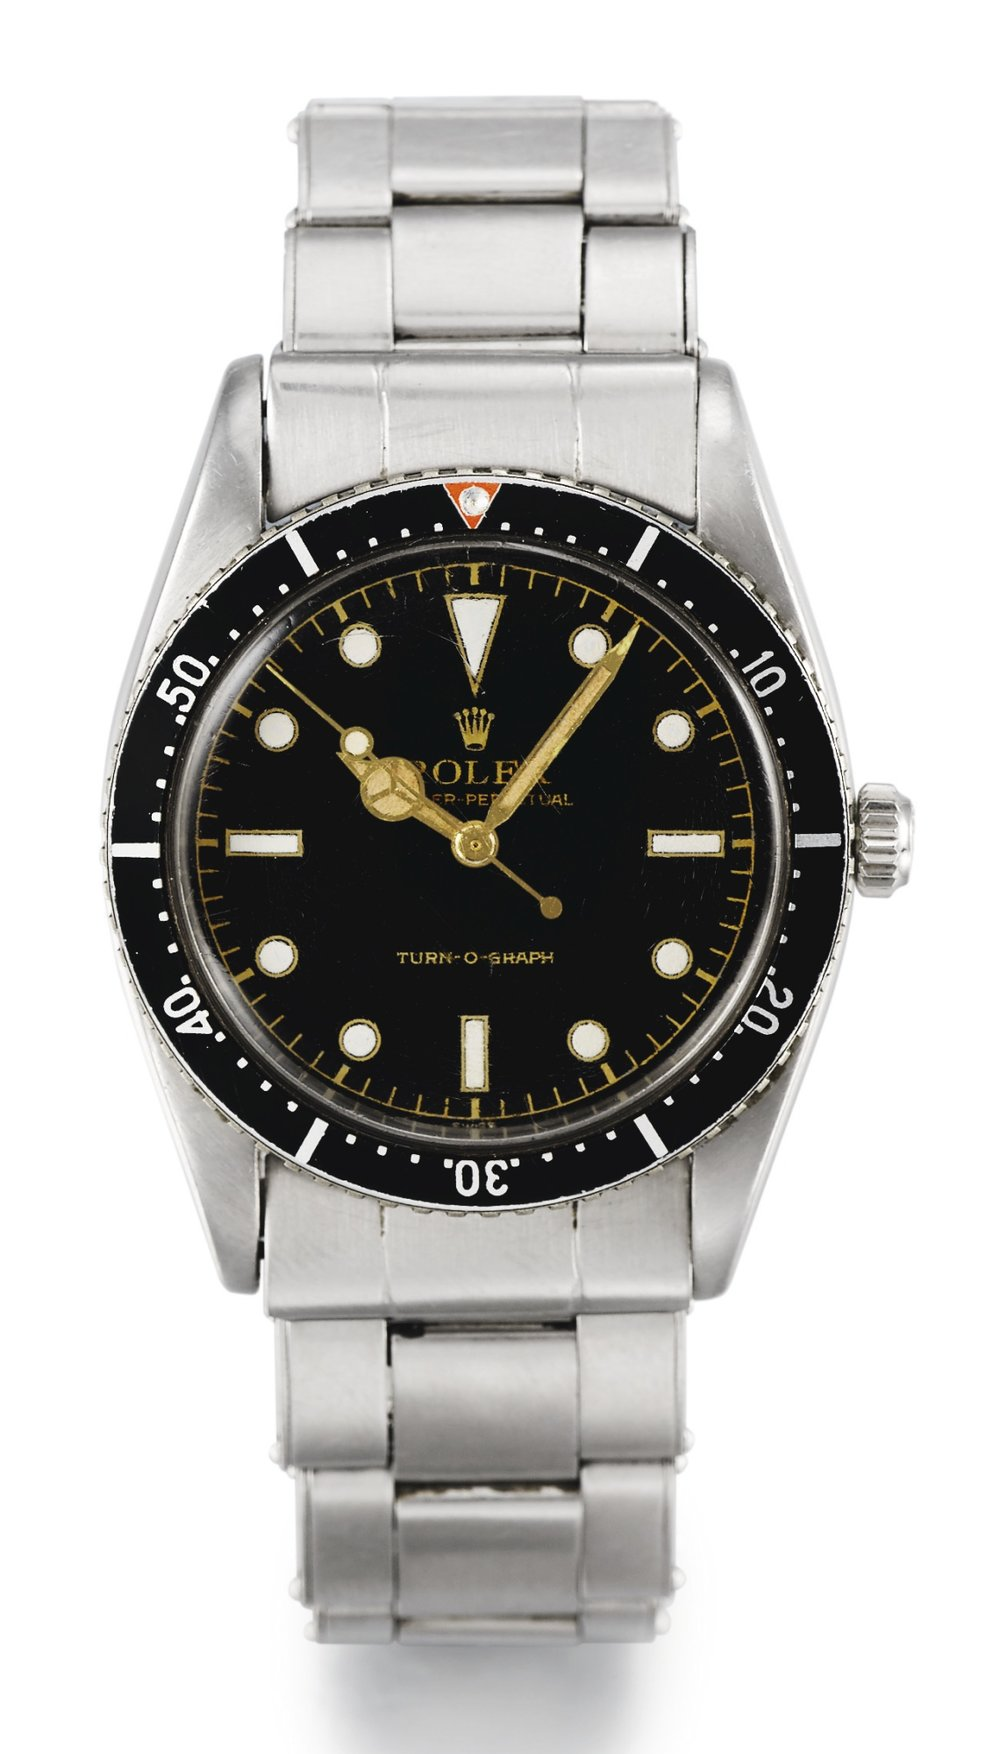 Rolex Turn-o-graph Ref. 6202. Photo courtesy of Sotheby's